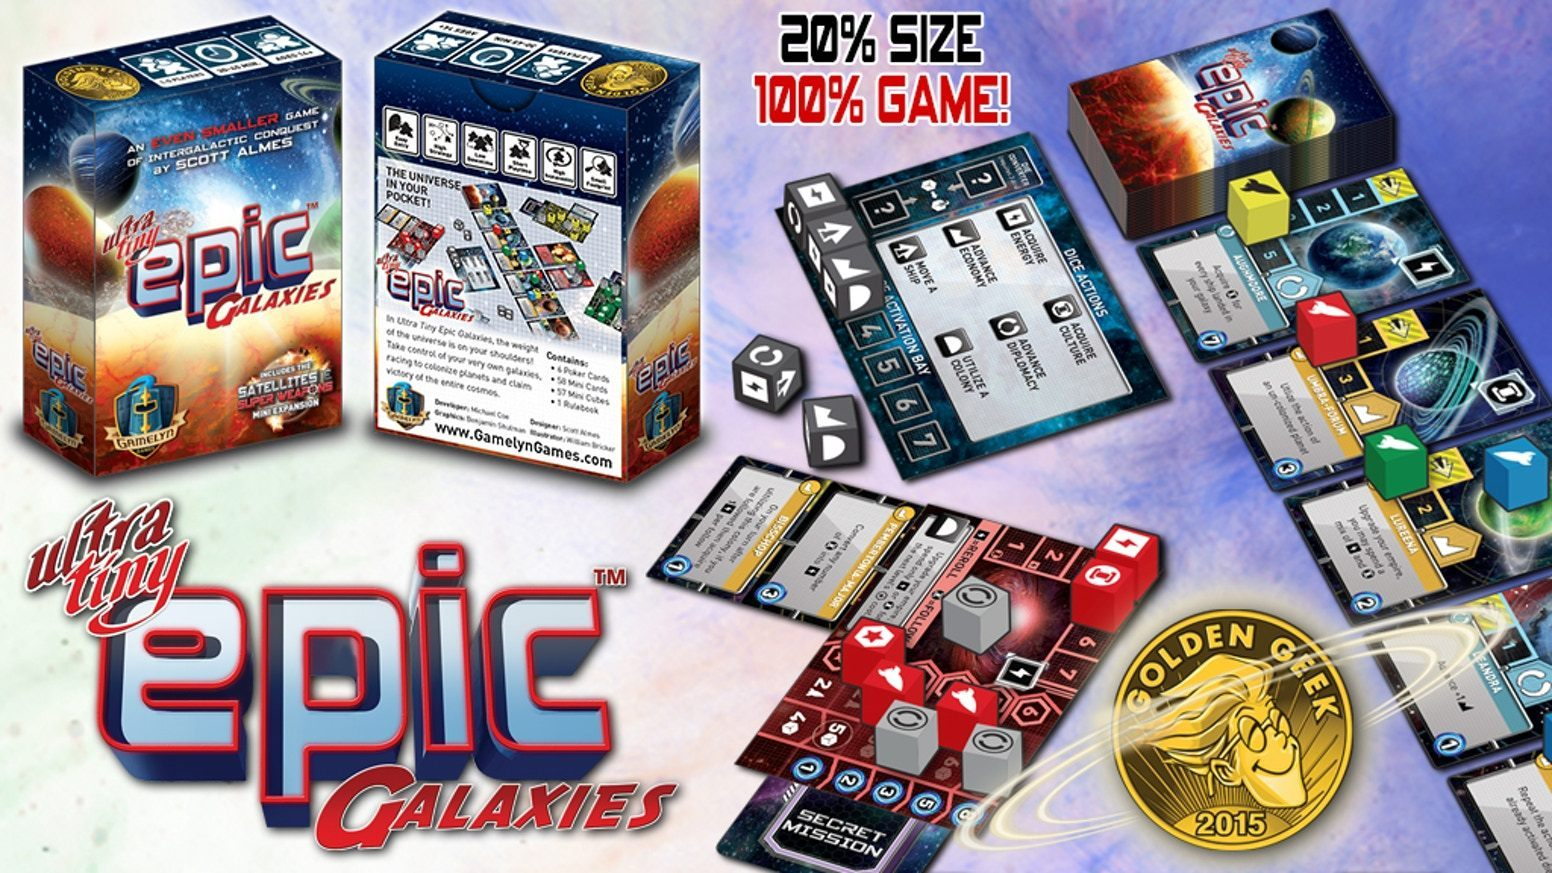 Ultra Tiny Epic Galaxies | All About Games